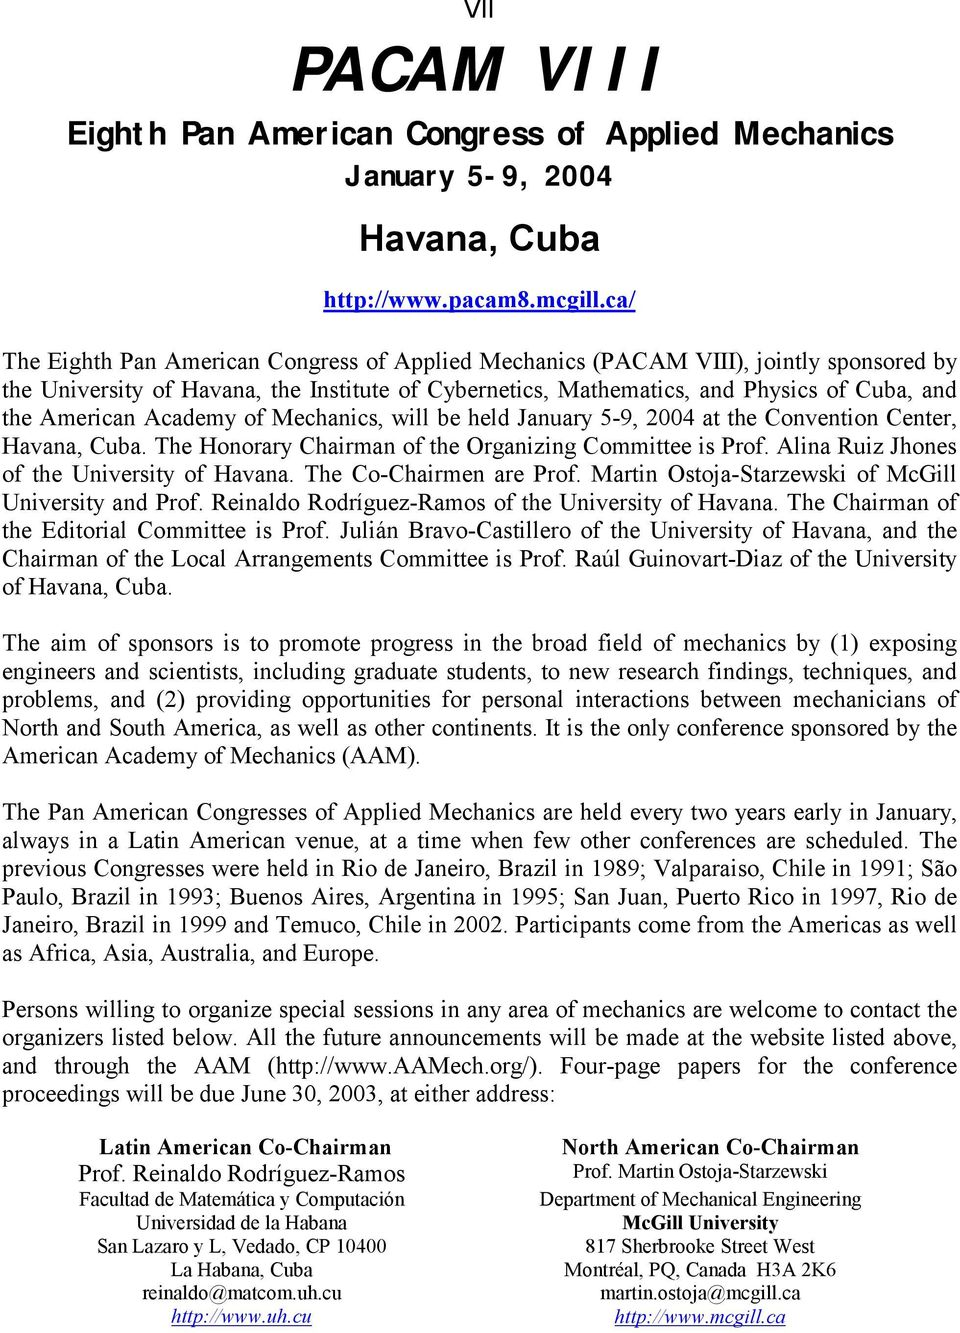 Academy of Mechanics, will be held January 5-9, 2004 at the Convention Center, Havana, Cuba. The Honorary Chairman of the Organizing Committee is Prof. Alina Ruiz Jhones of the University of Havana.